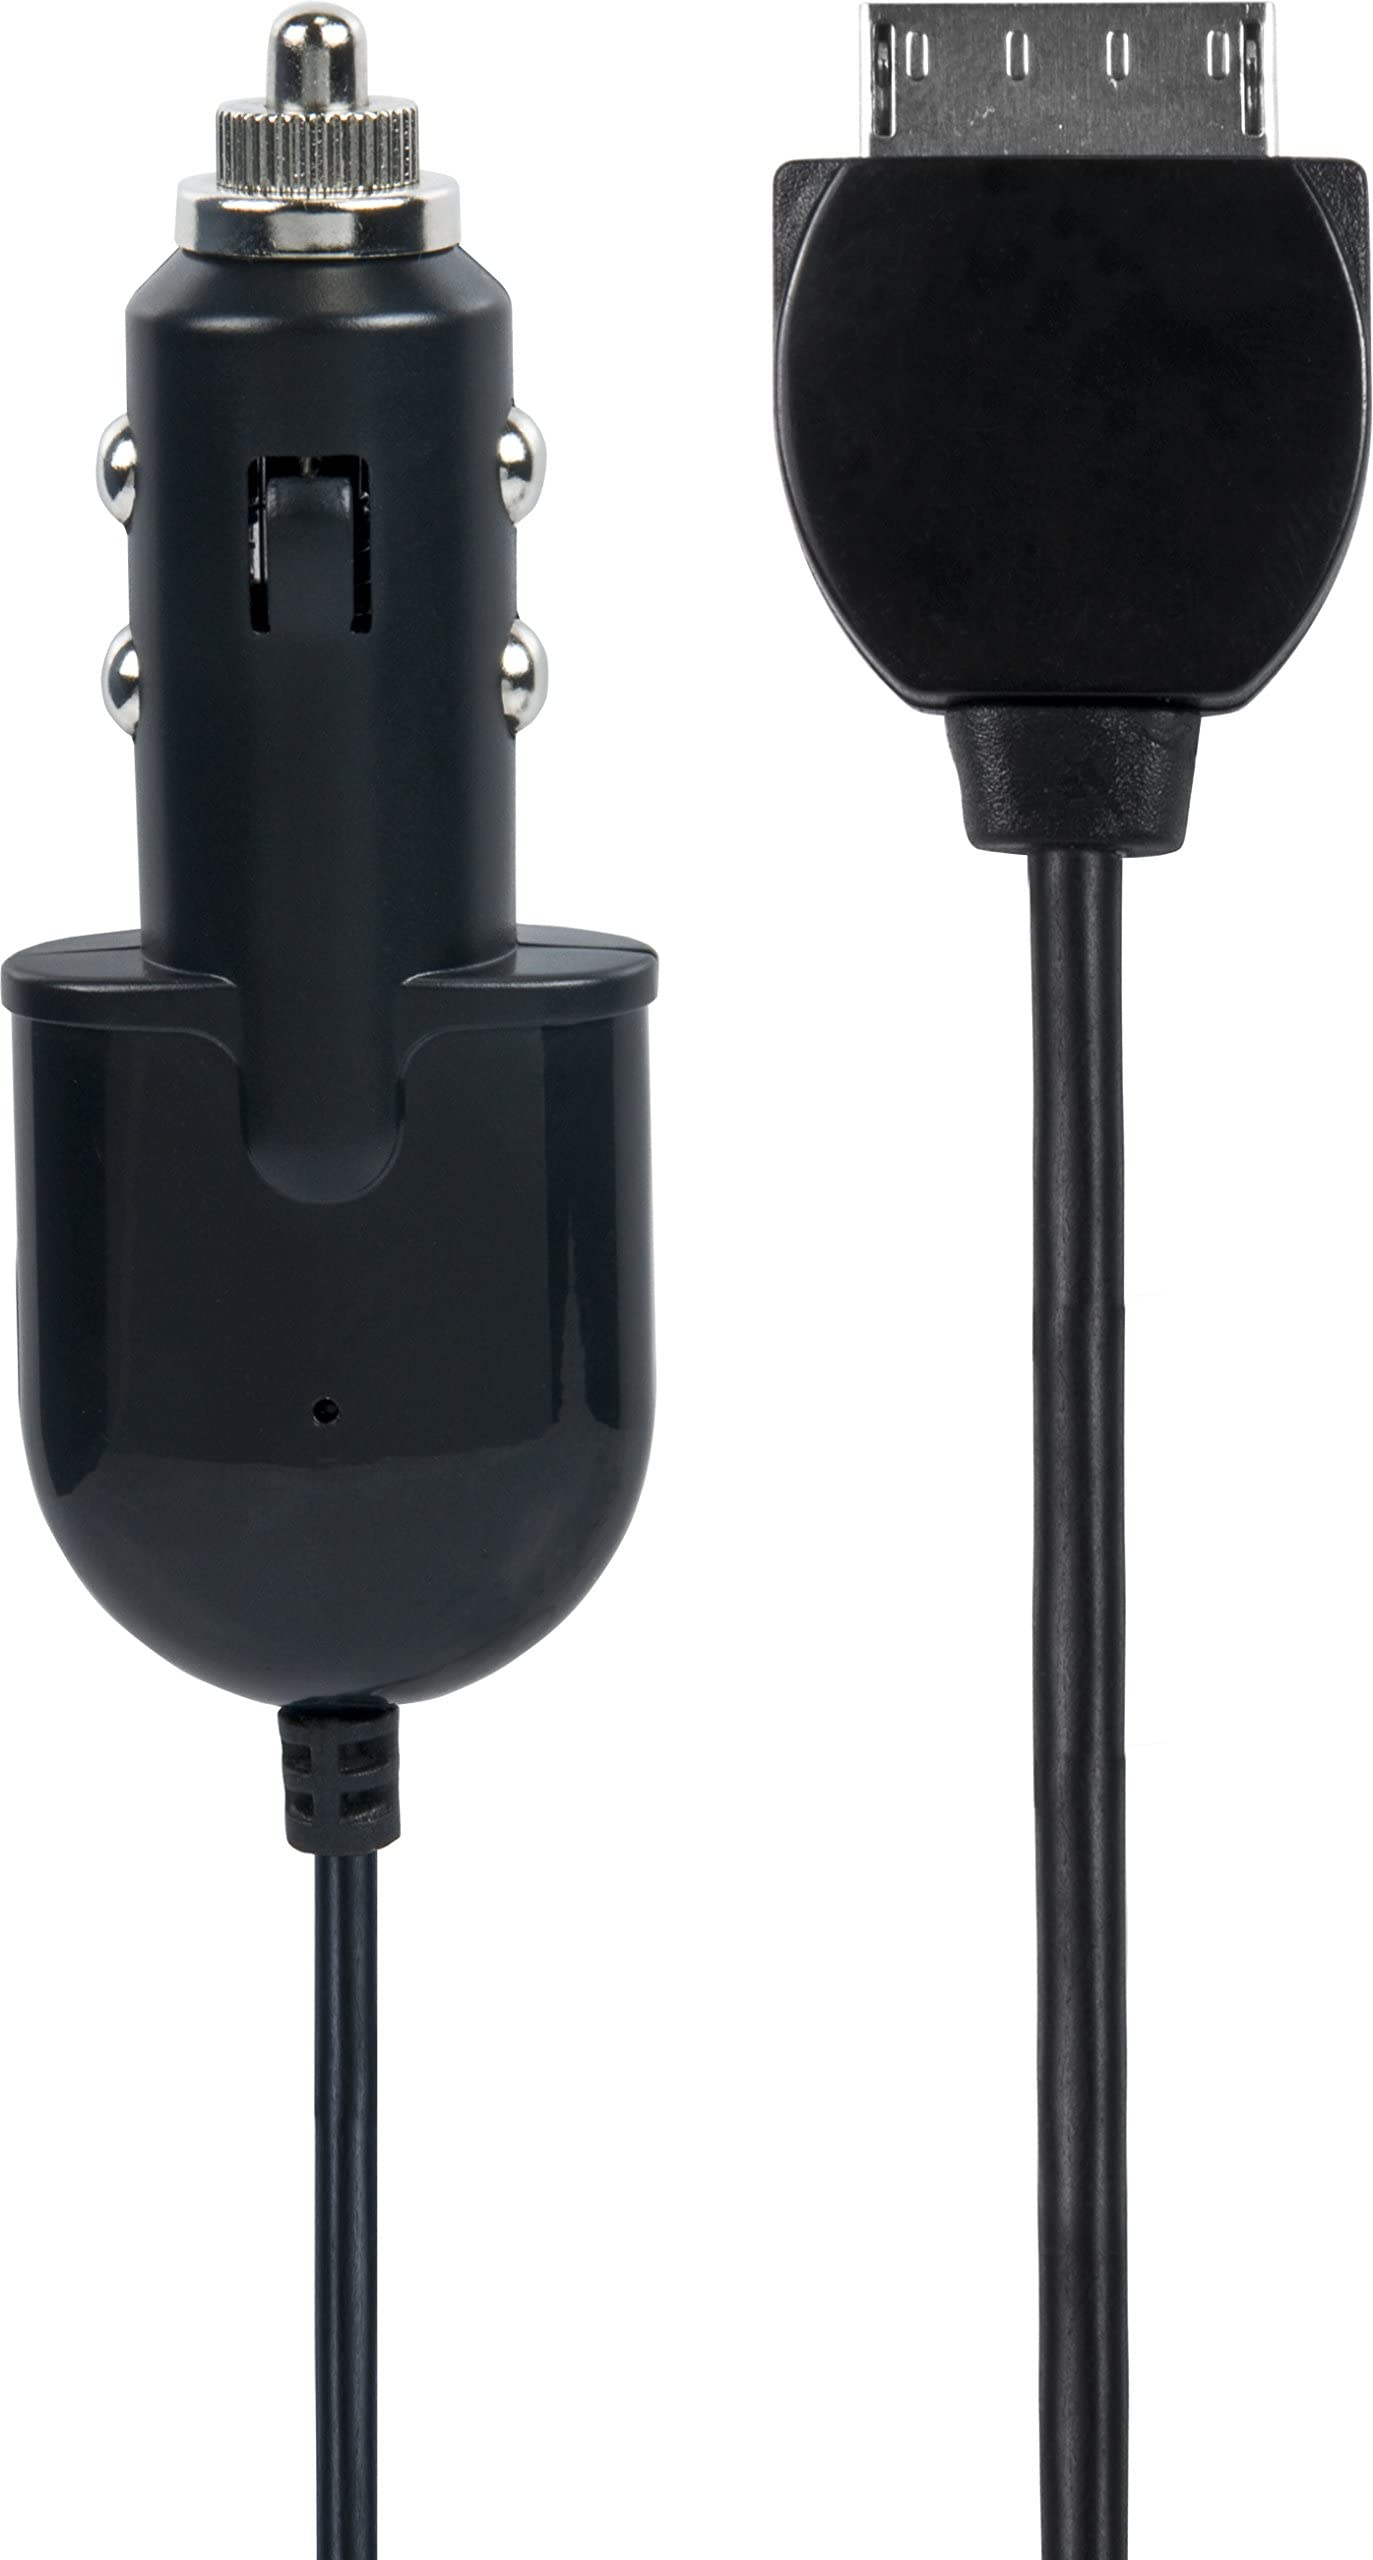 Amazon.com: PSP Go Car Charger: Video Games